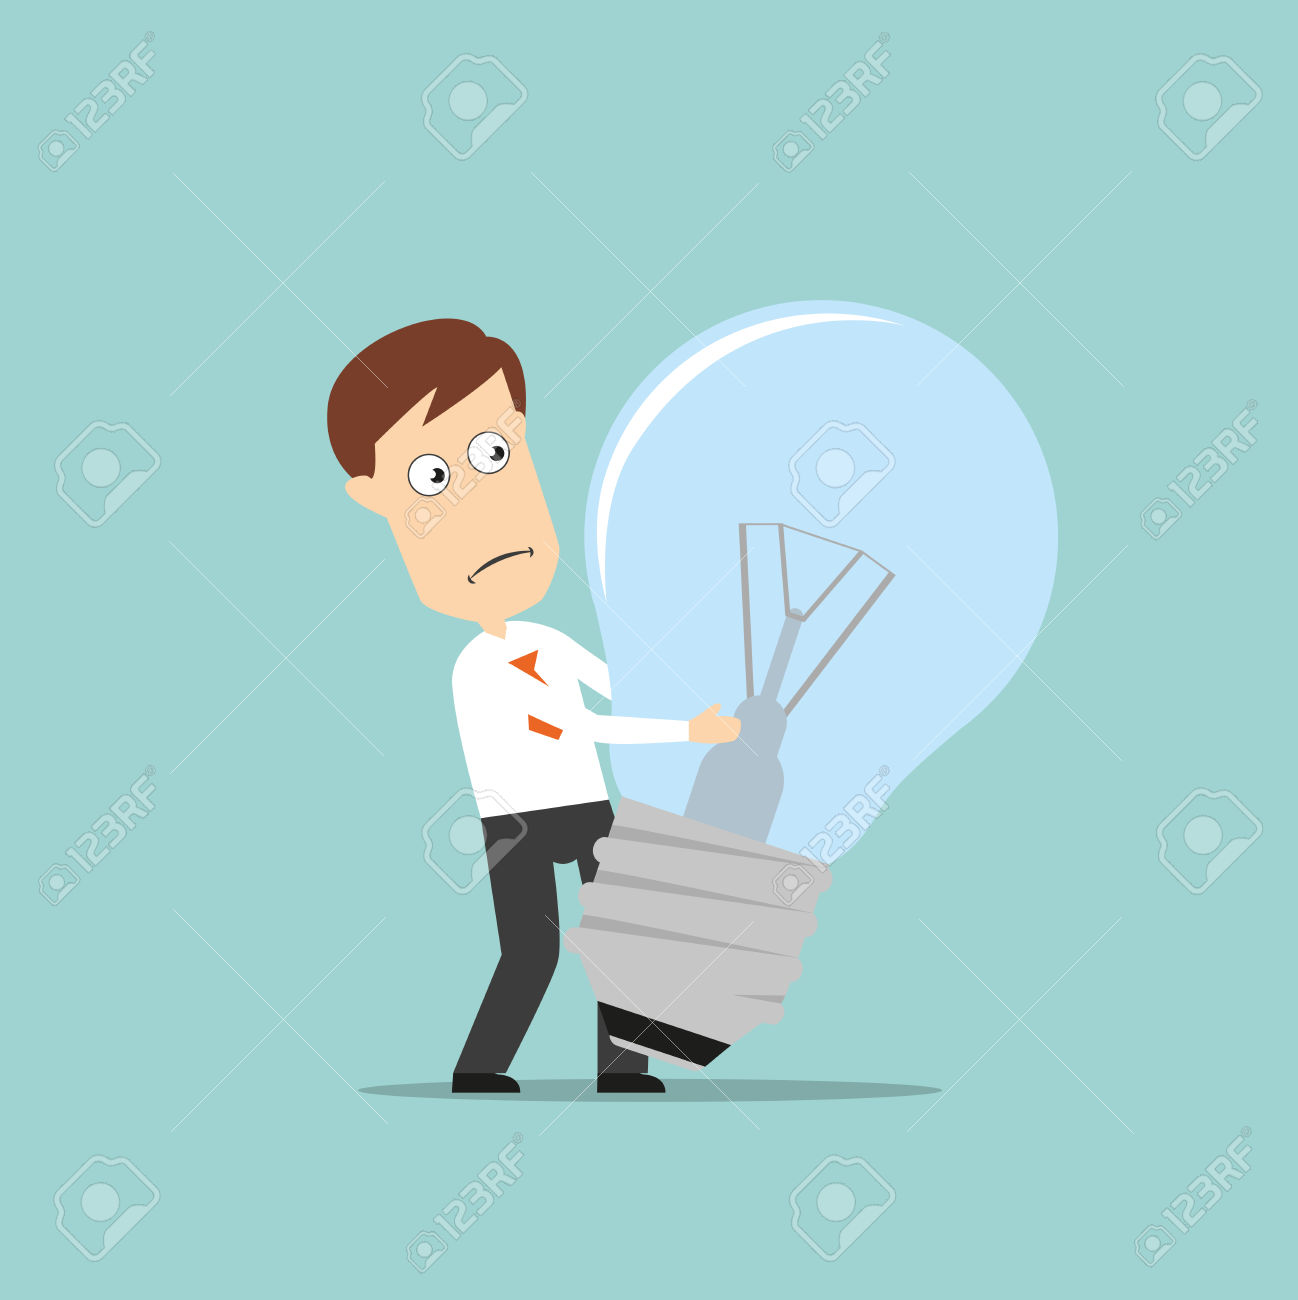 Boy turning lights off clipart jpg free download 652 Turned Off Stock Vector Illustration And Royalty Free Turned ... jpg free download